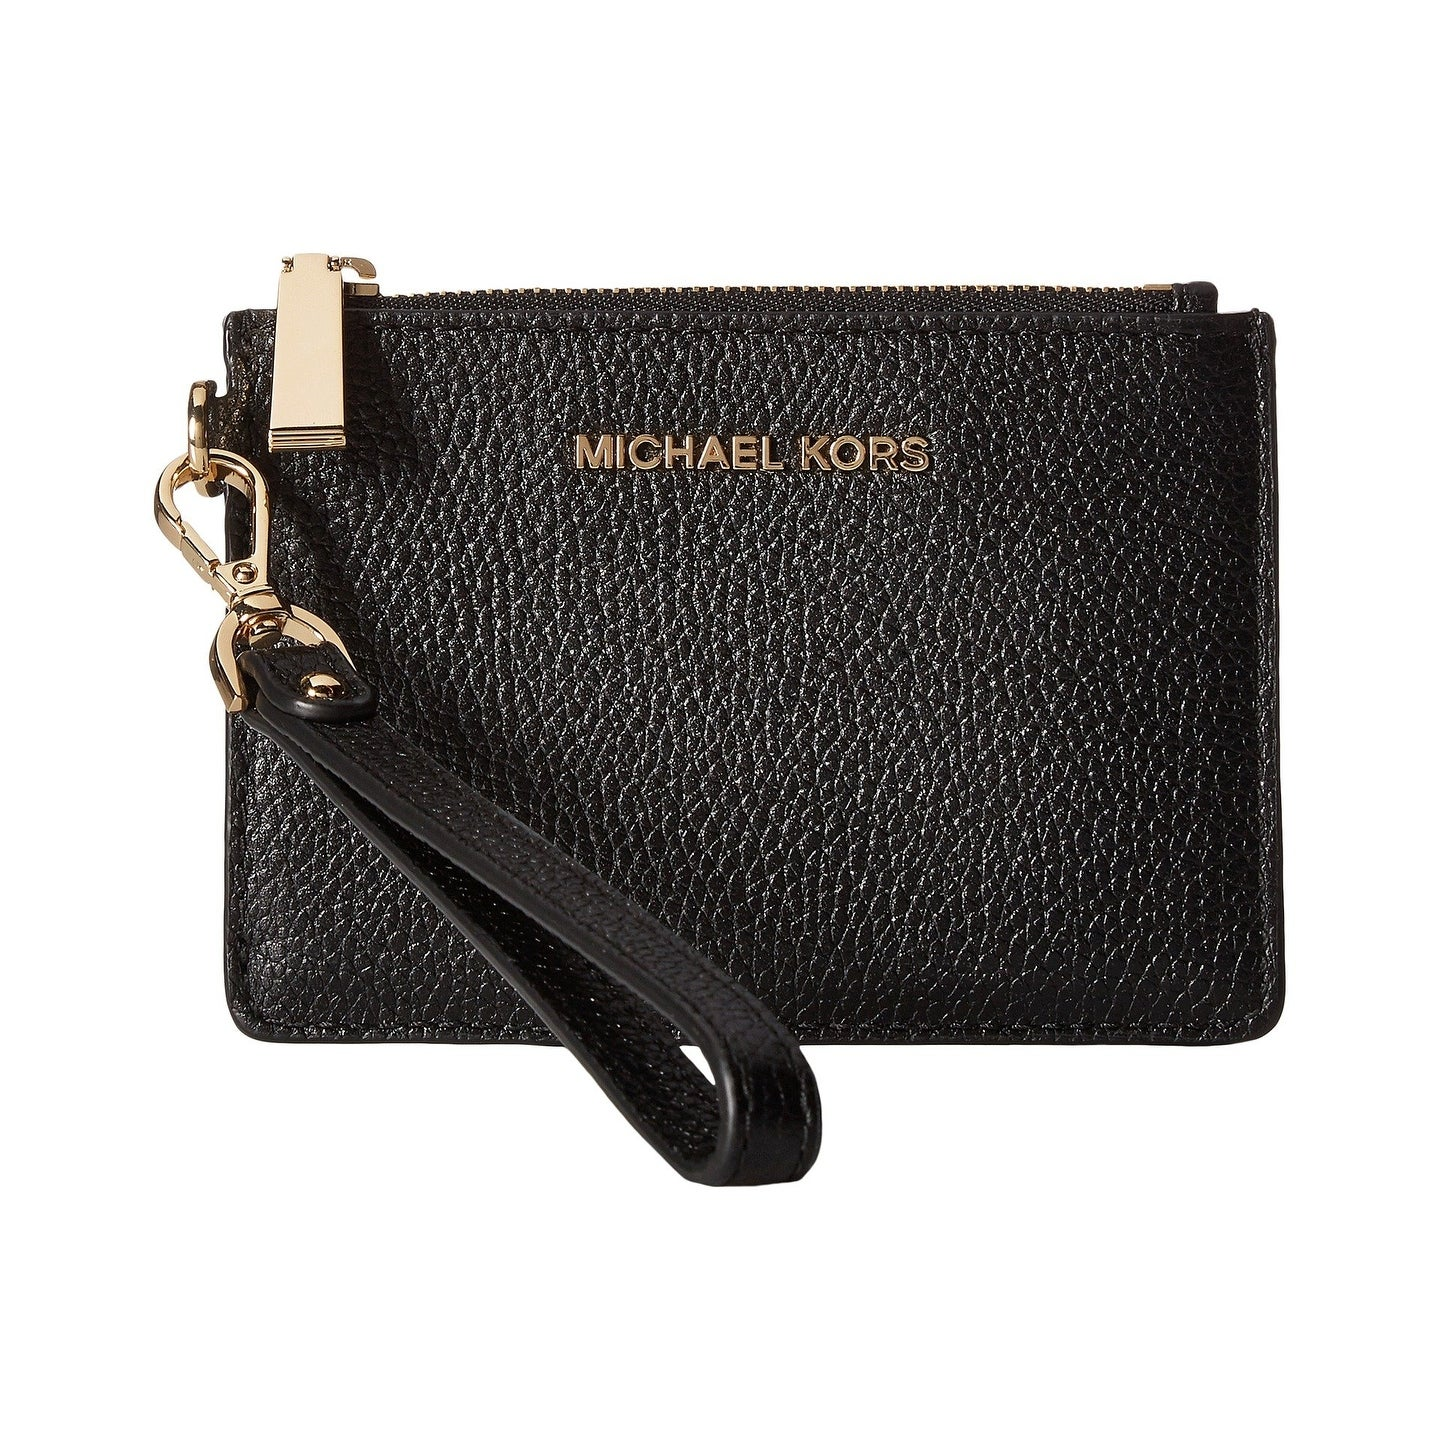 4a6a0210caed Michael Kors Wallets | Find Great Accessories Deals Shopping at Overstock